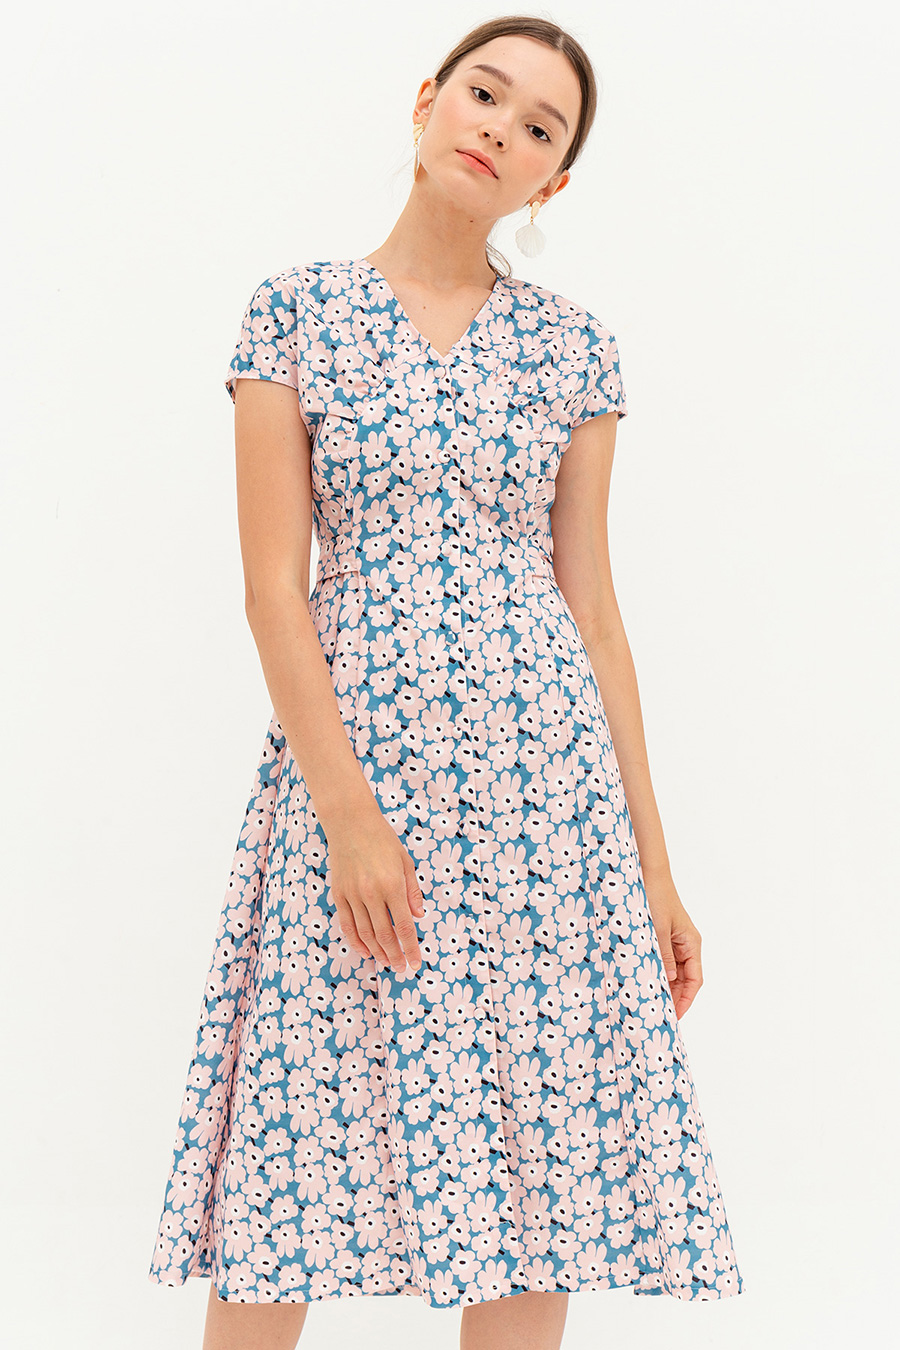 *BO* HERMINE DRESS - DANDELION [BY MODPARADE]